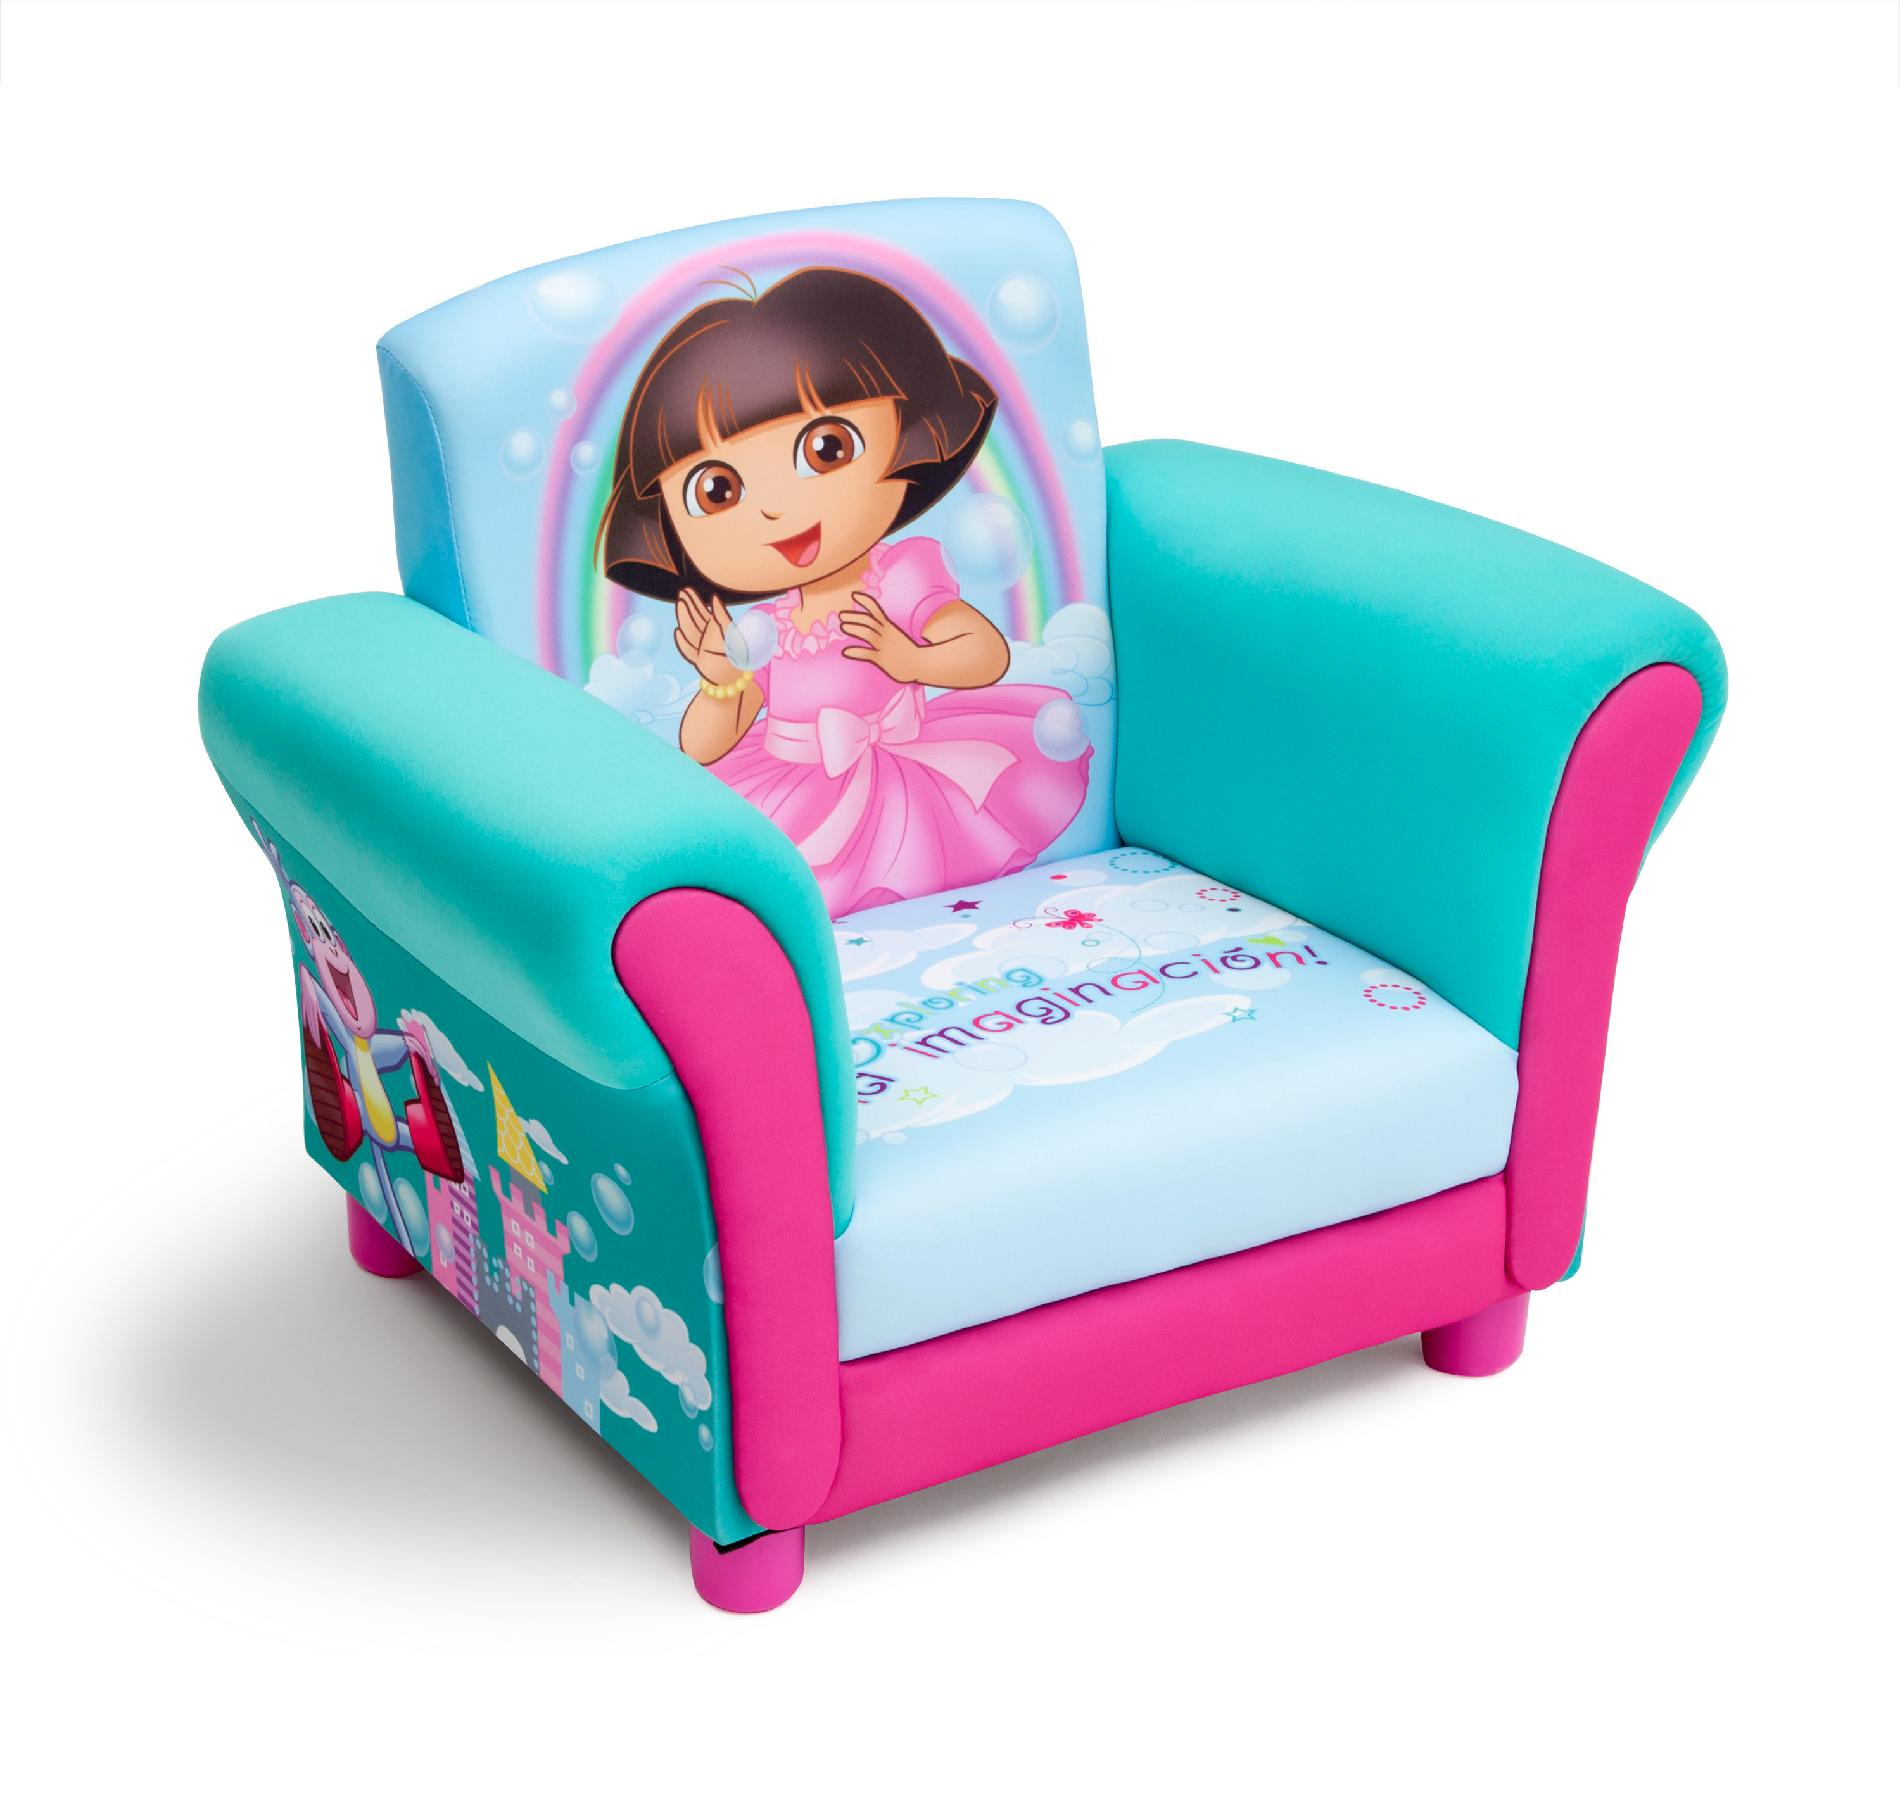 Sofa Chair For Toddler Delta Children Dora Upholstered Chair Baby Toddler